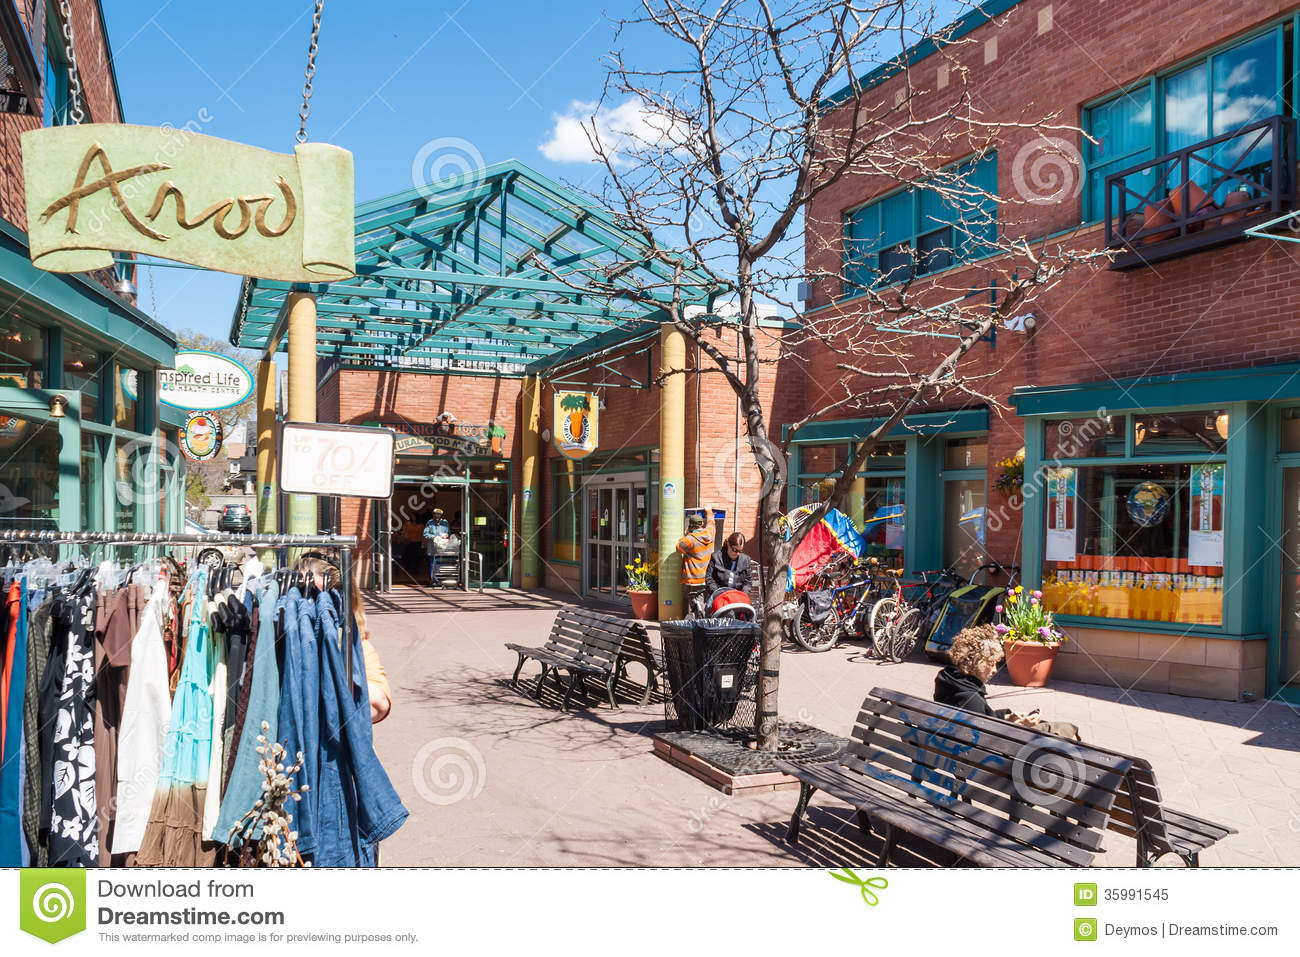 Houses and shops in Greektown in Toronto